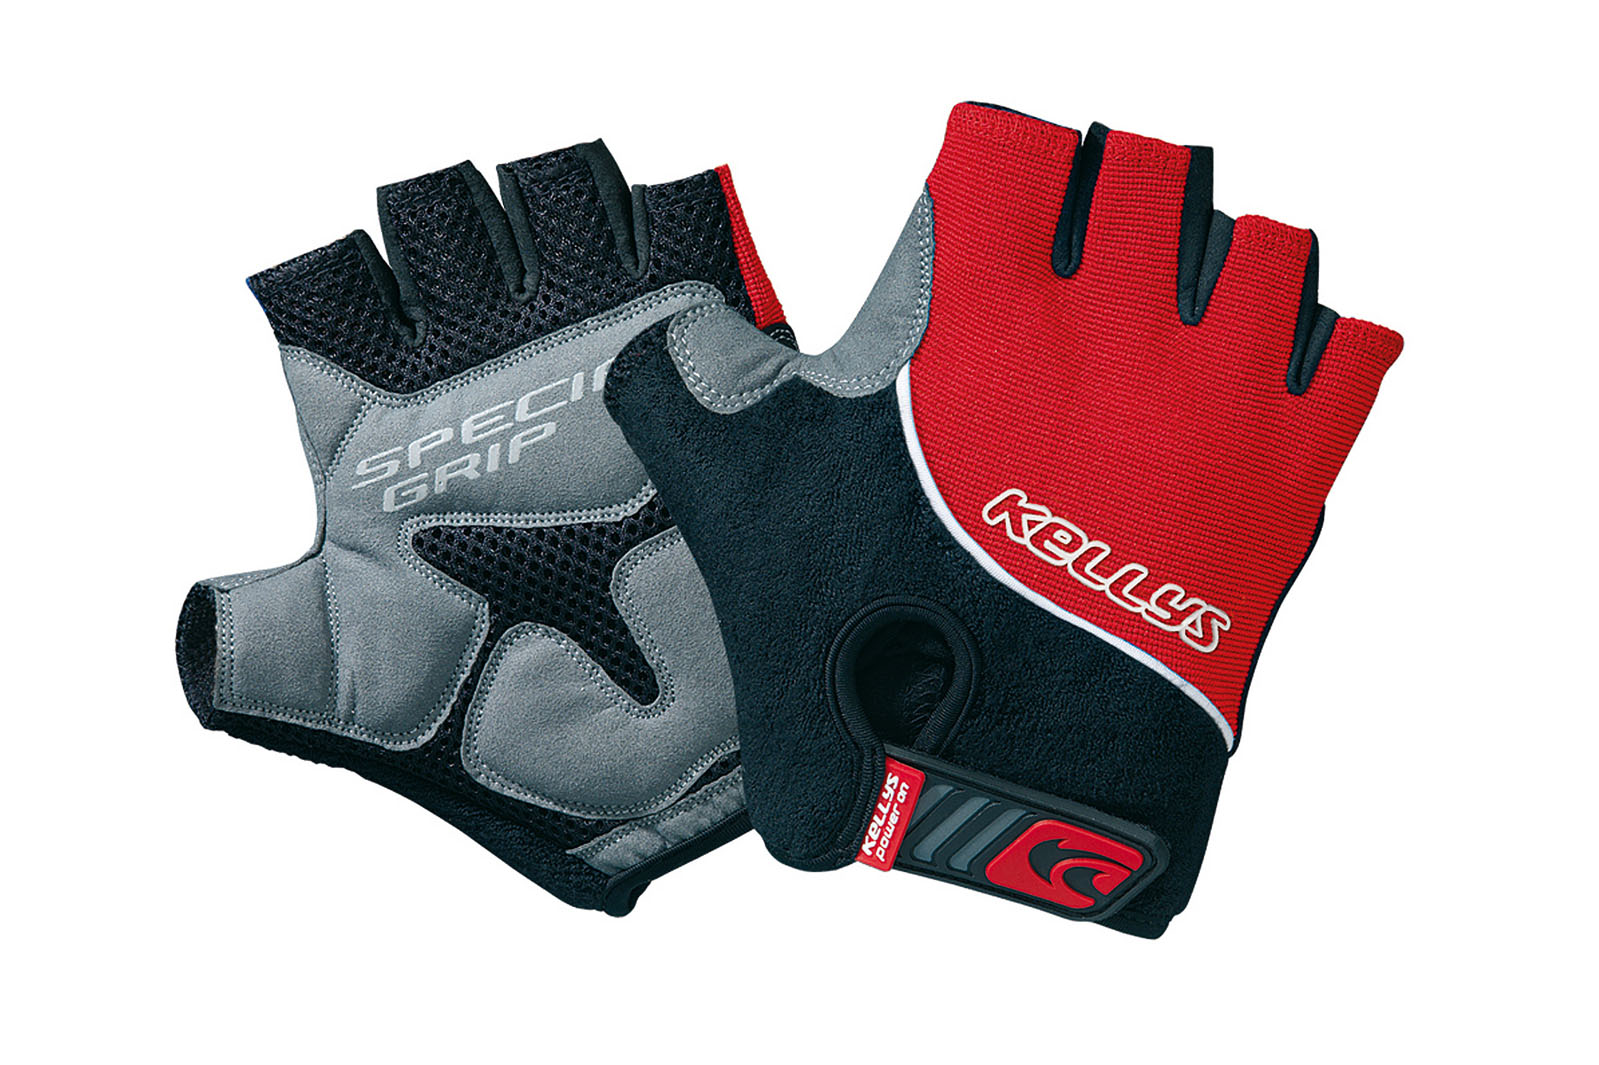 Handschuhe RACE red M - Mile-Multisport